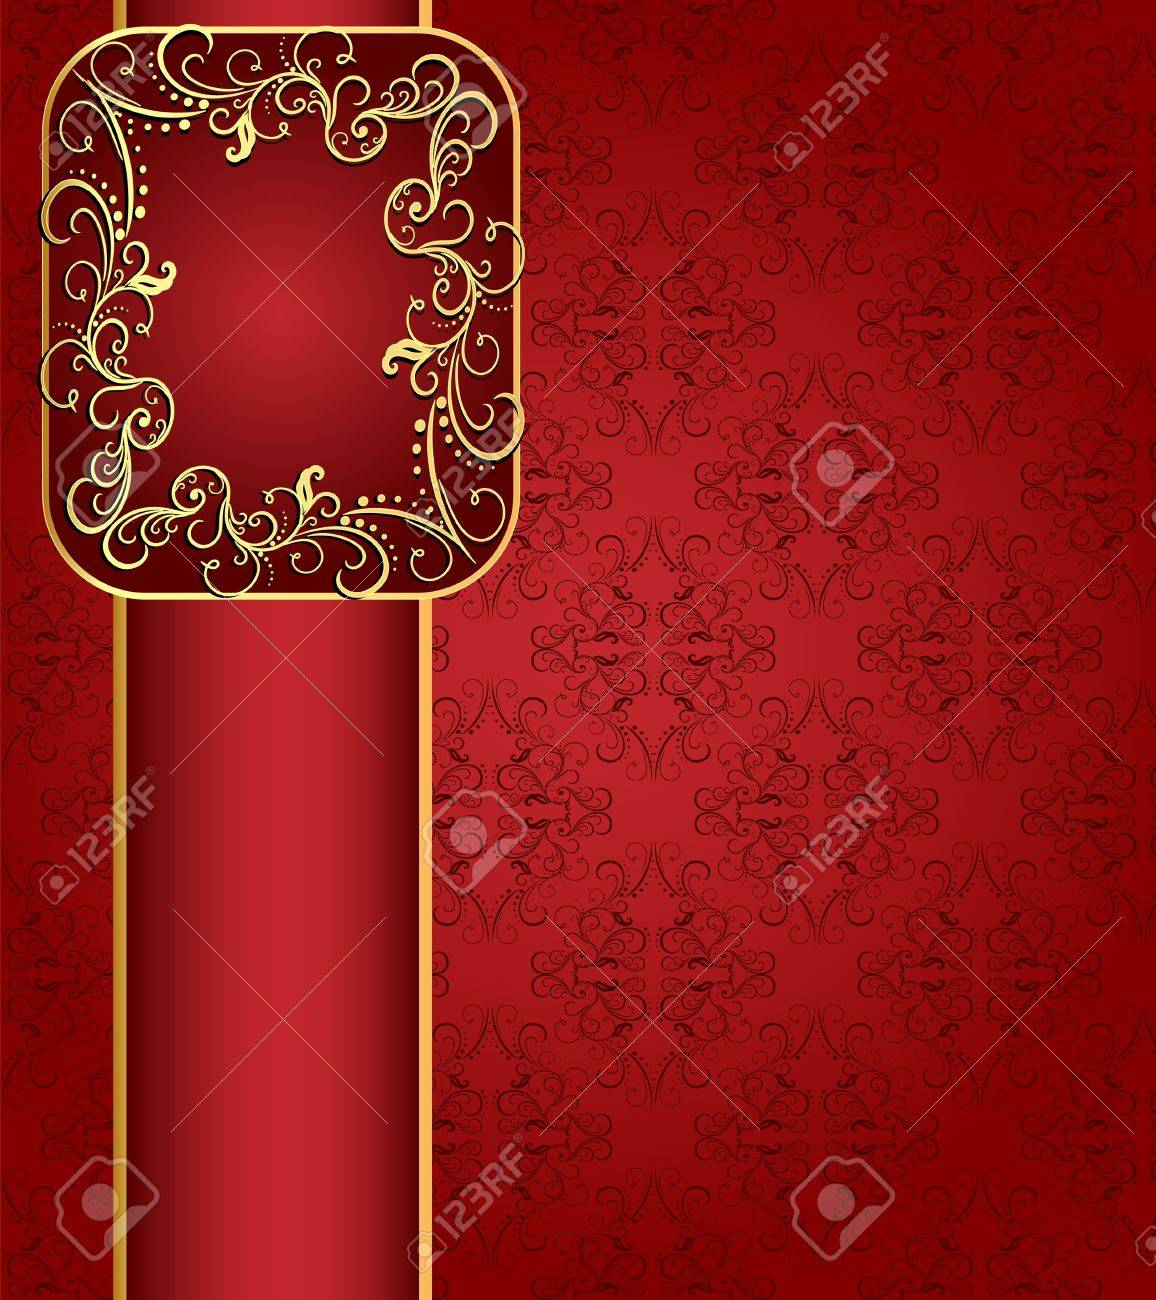 illustration seamless red background with band and frame with gold(en) pattern Stock Vector - 13594571